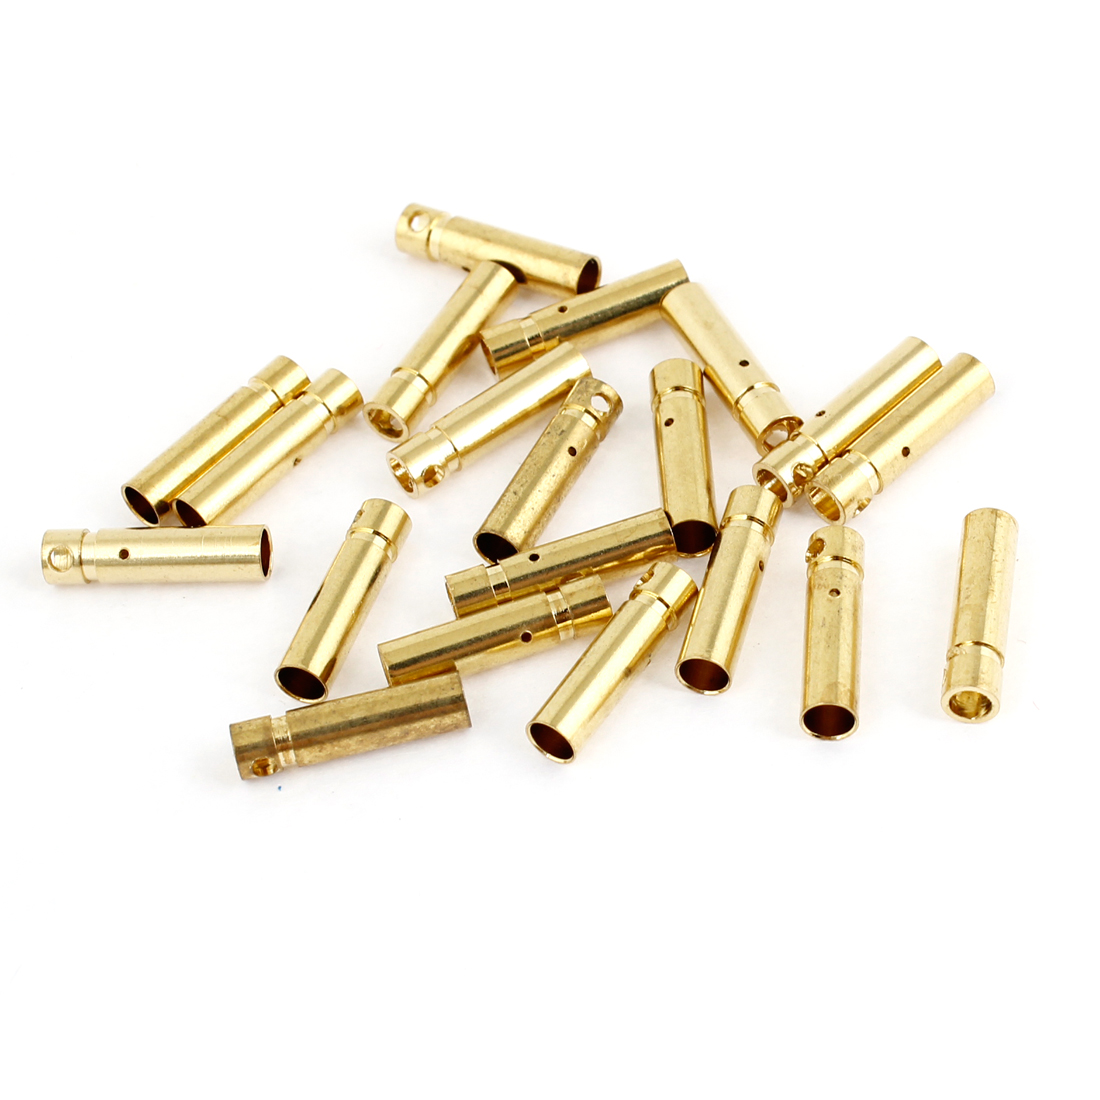 20PCS Gold Tone Metal RC Banana Plug Connector Female 3mm Diameter